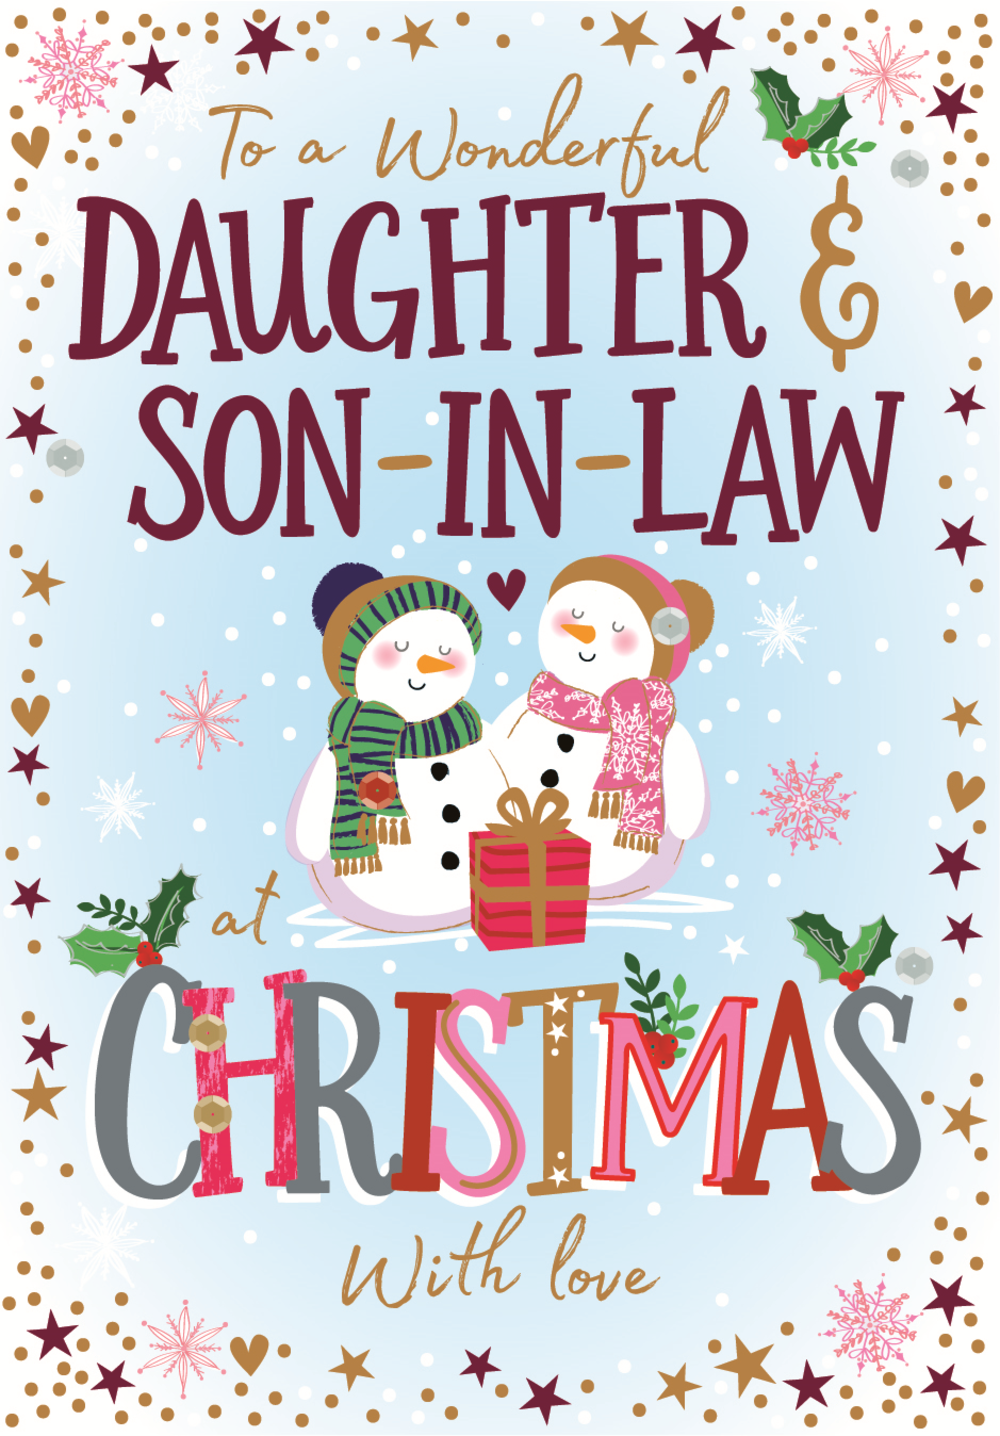 Daughter & Son-In-Law Embellished Christmas Greeting Card ...